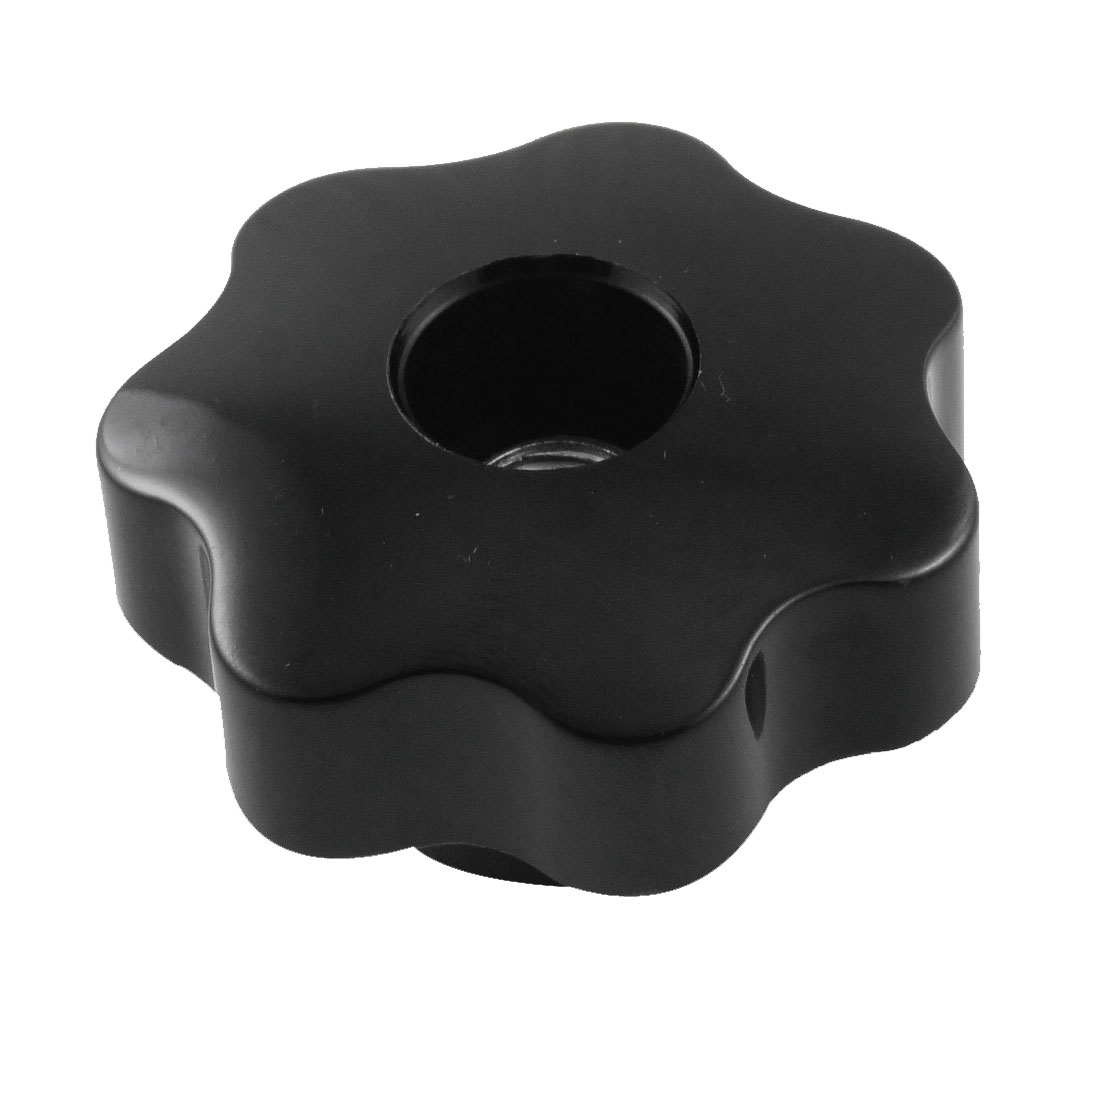 10mm Female Thread 50mm Dia Black Star Head Clamping Knob